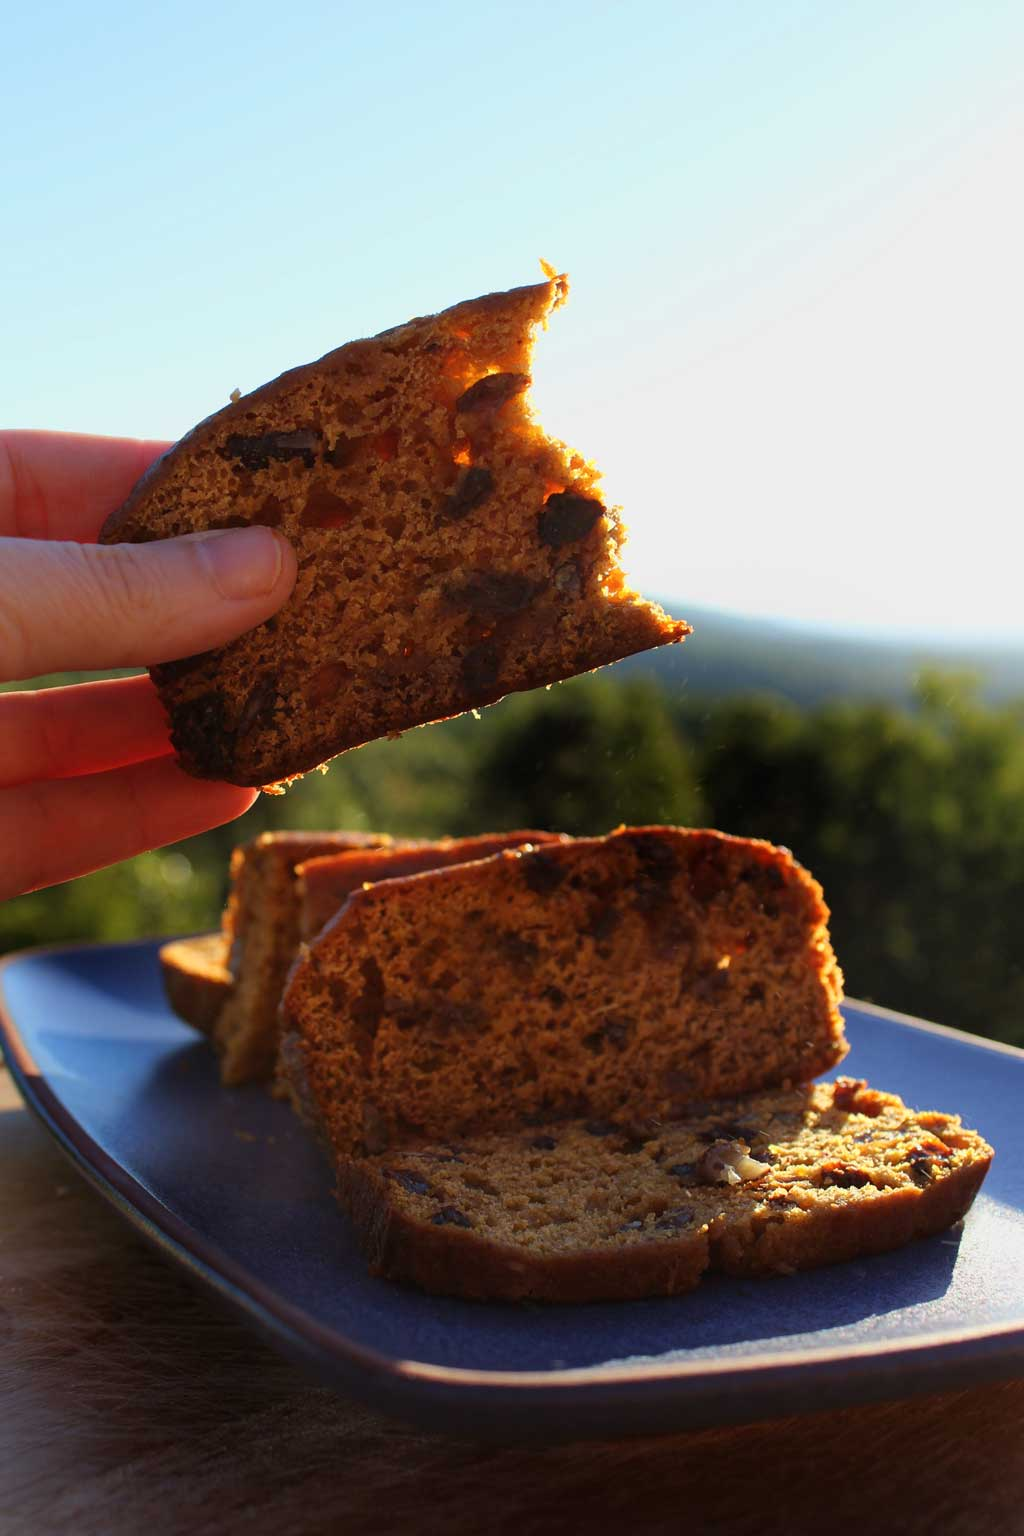 Flavorful and moist, this pumpkin cinnamon bread is bursting with fall pumpkin flavor inevery bite. This easy recipe should be on your fall bucket list!